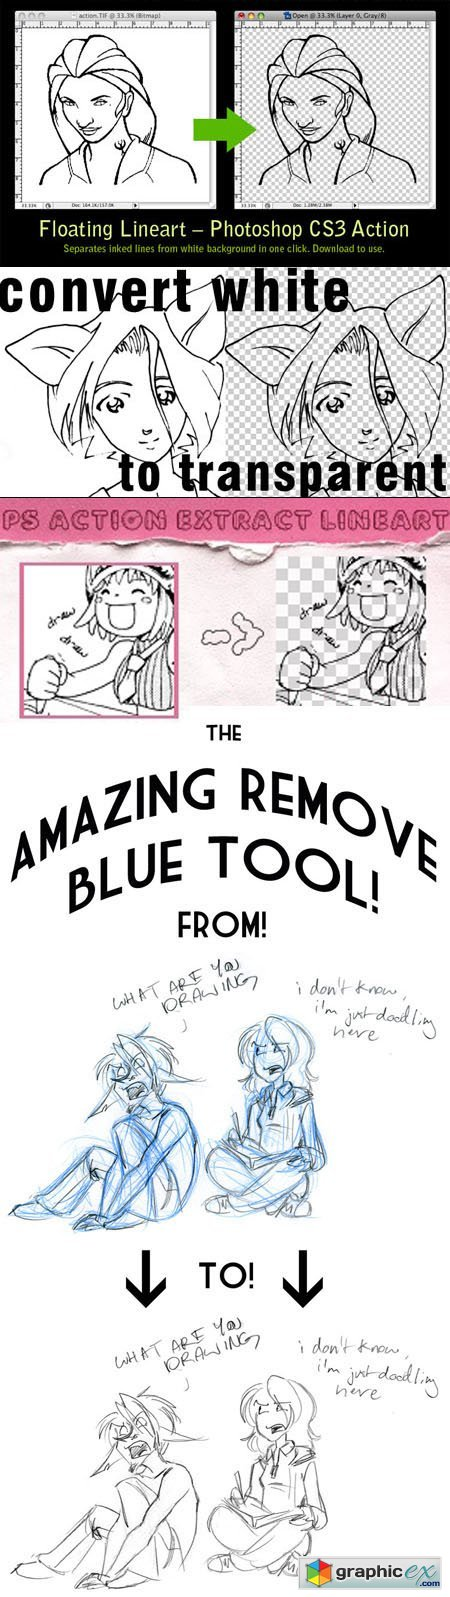 Floating Lineart & Remove Blue Pencil Actions for Photoshop